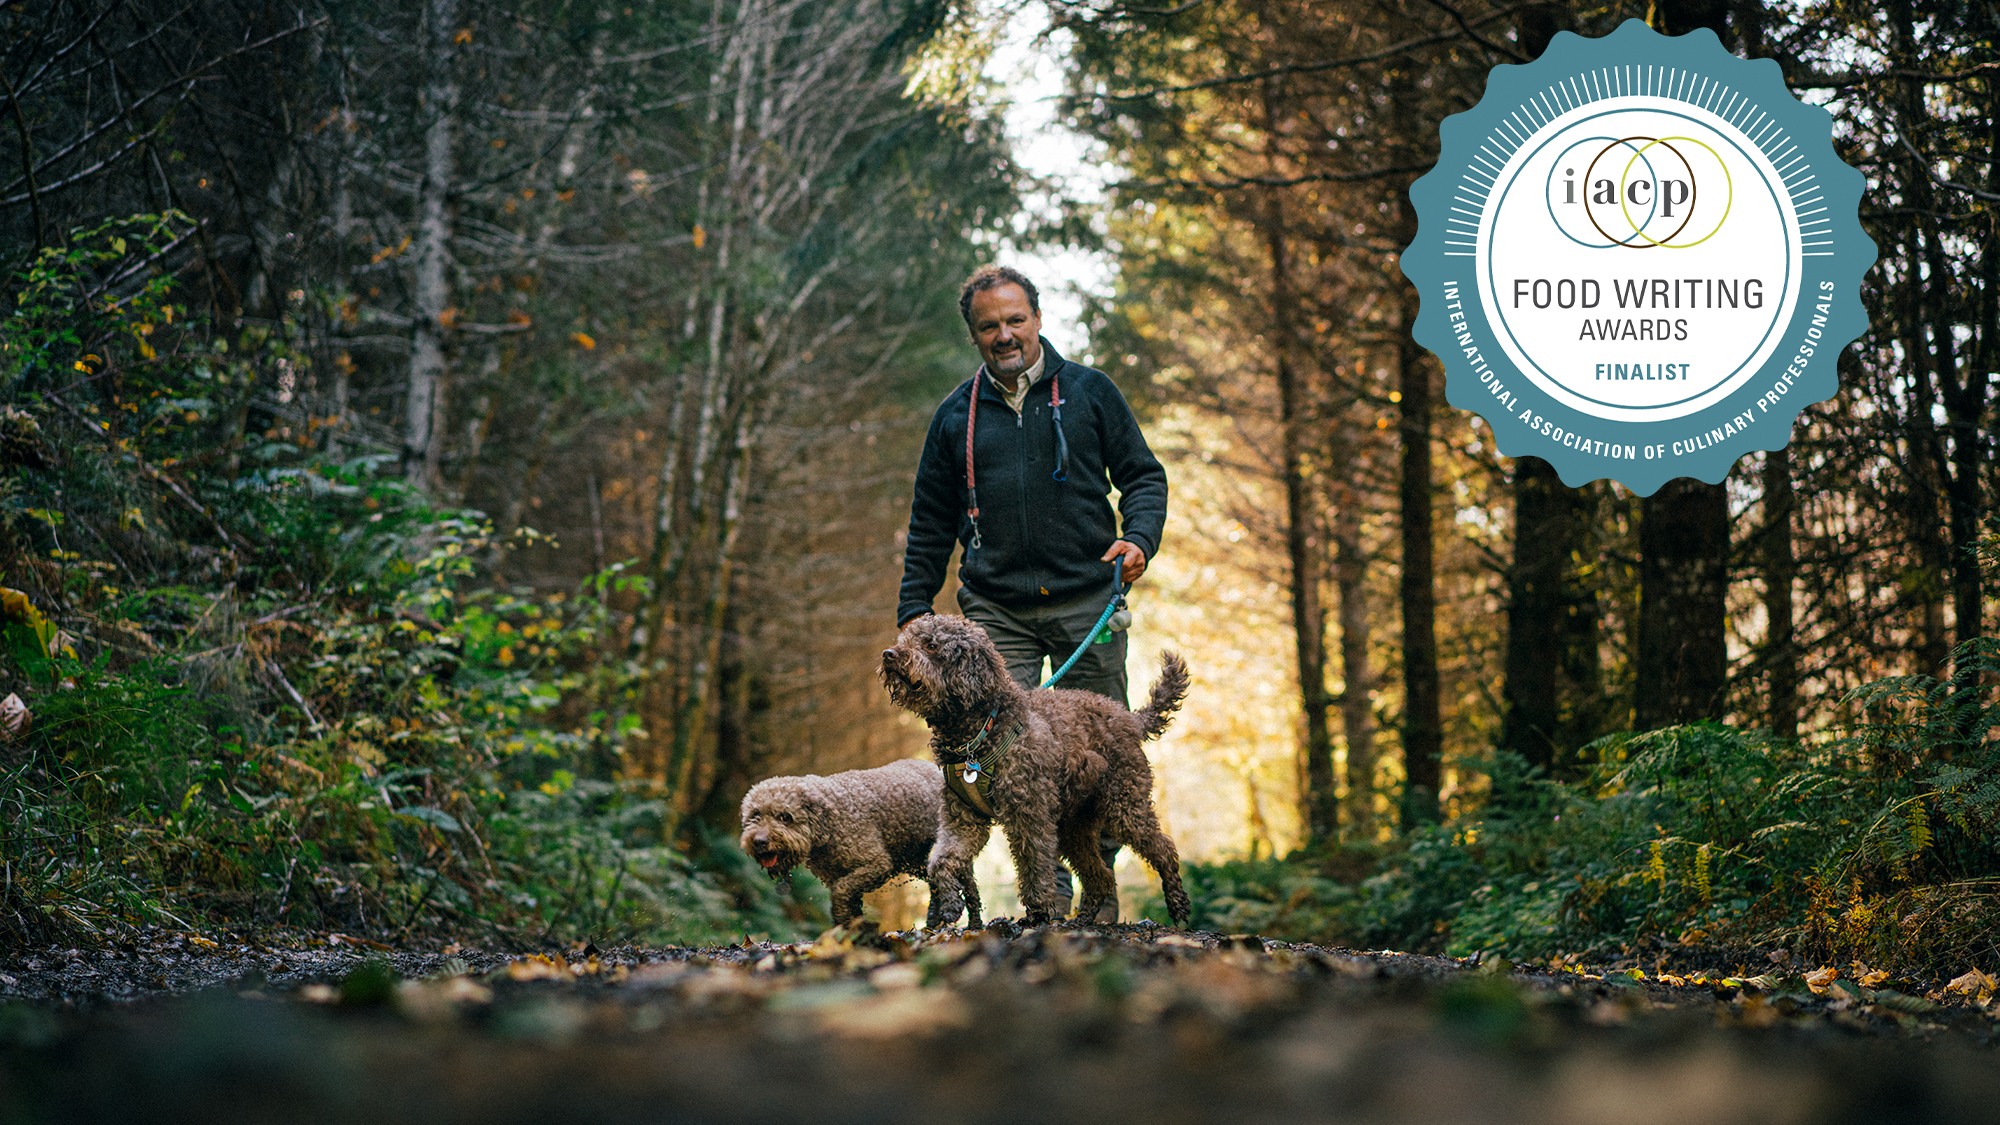 Charles Lefevre and his keen-nosed dogs, Mocha and Dante, hunt for truffles on an old logging road in the Oregon woods, where the fungi grow underneath Douglas fir trees.